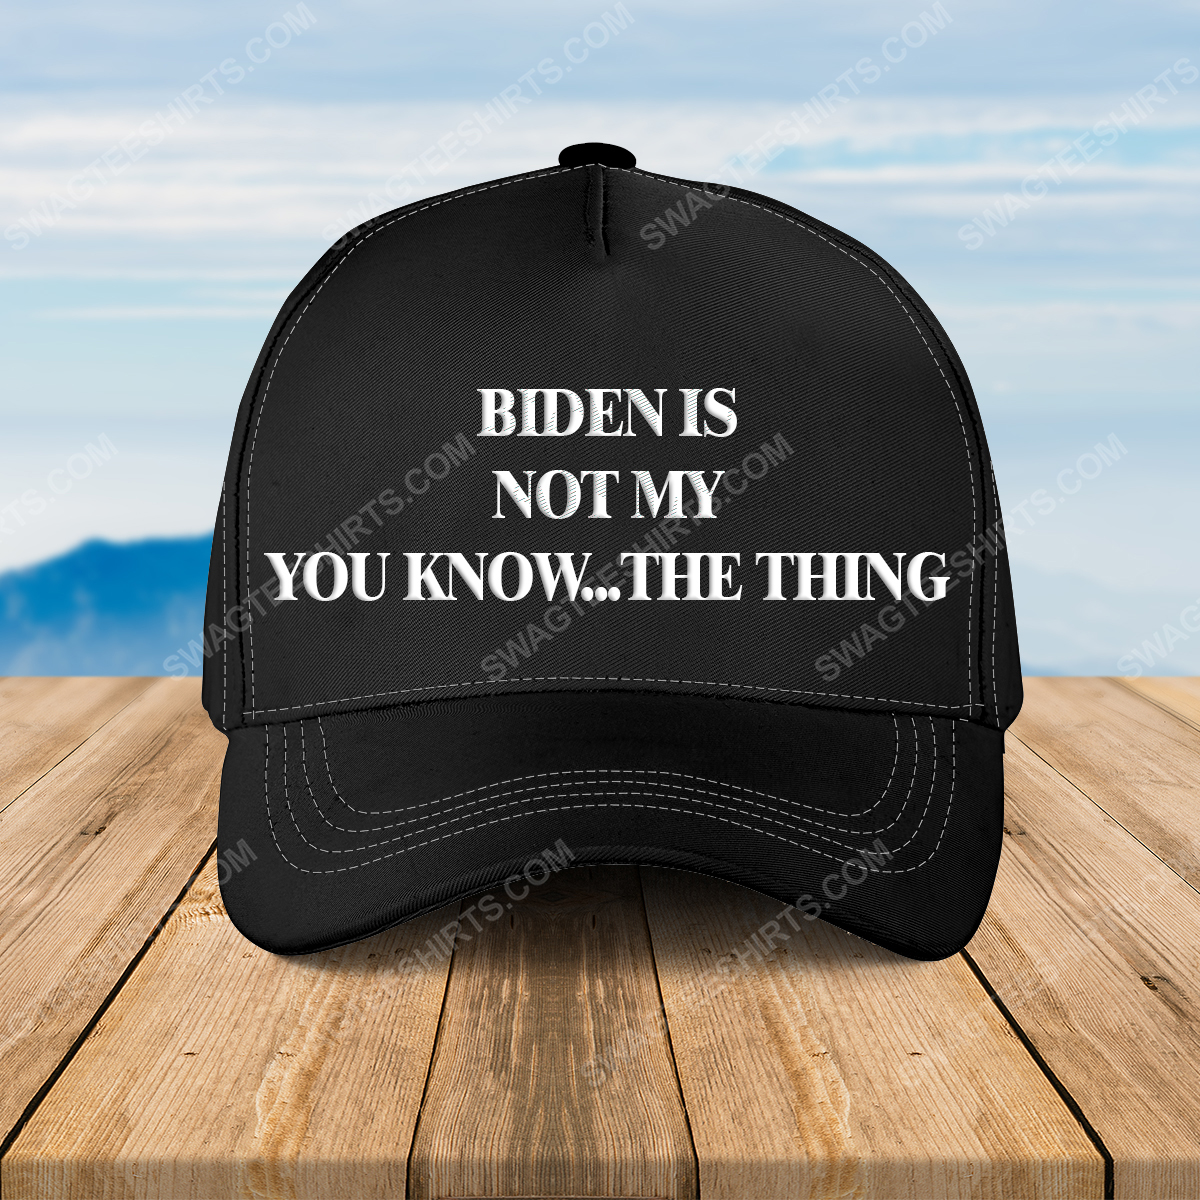 Biden is not my you know the thing full print classic hat 1 - Copy (3)